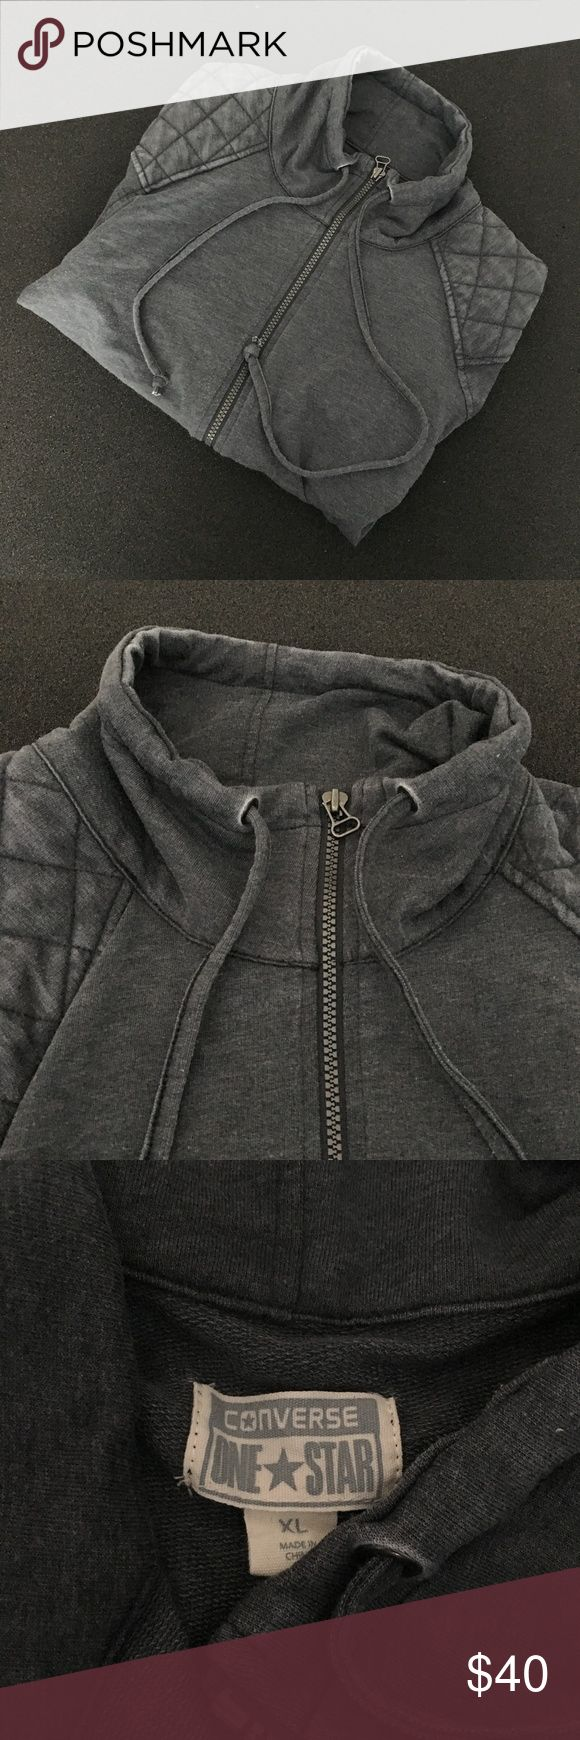 Converse Zip Up Jacket XL Gray Women's Coat In good condition See photos If you have any questions feel free to ask Converse Jackets & Coats